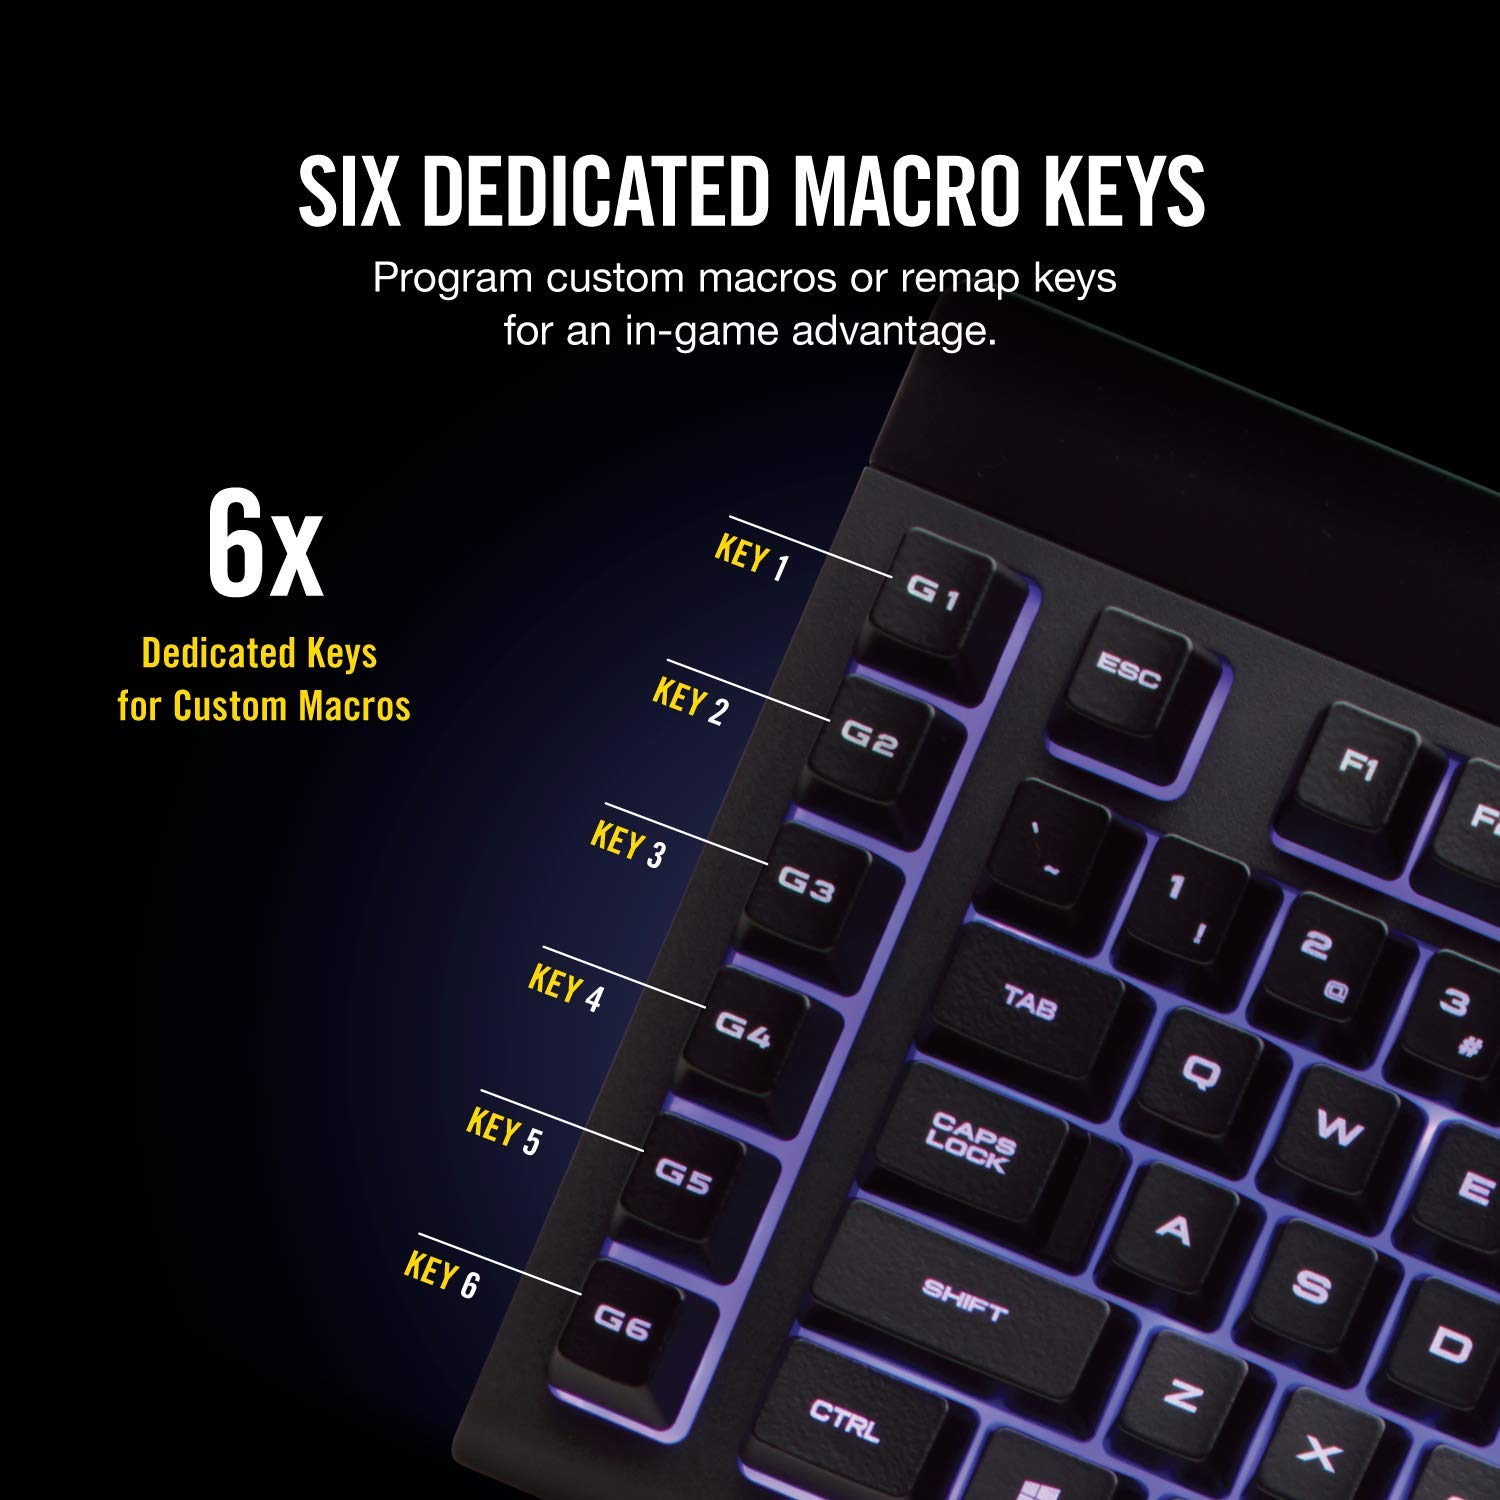 1ms Response time with Slipstream Wireless Bluetooth or Wired Individually Backlit RGB Keys Connect with USB dongle CORSAIR K57 RGB Wireless Gaming Keyboard